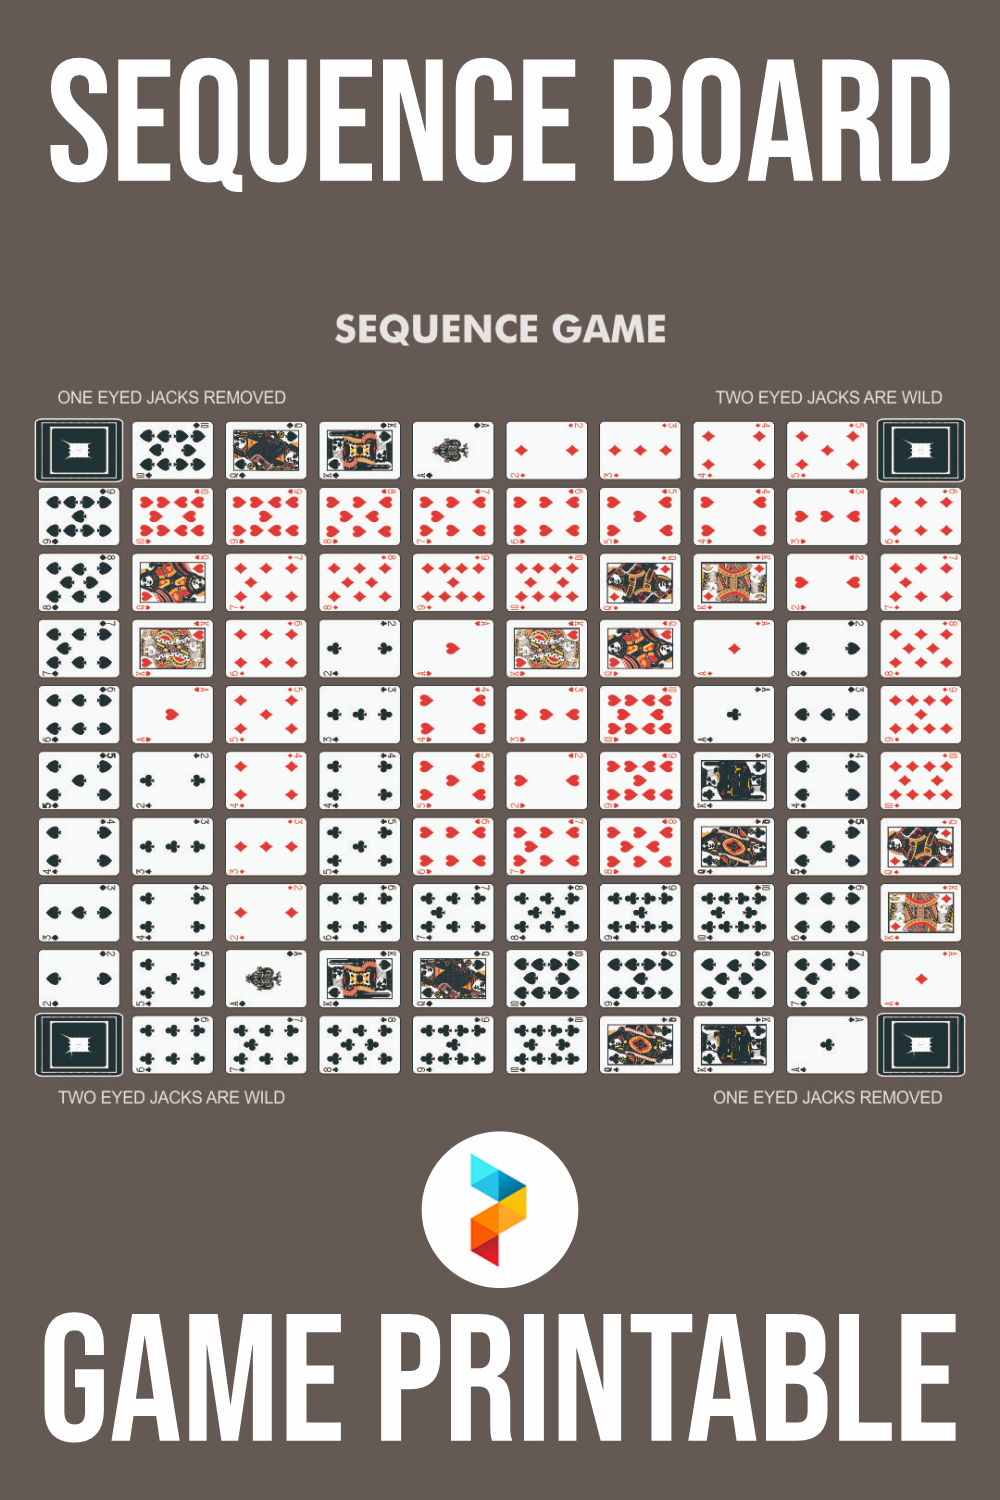 Sequence Board Game Printable